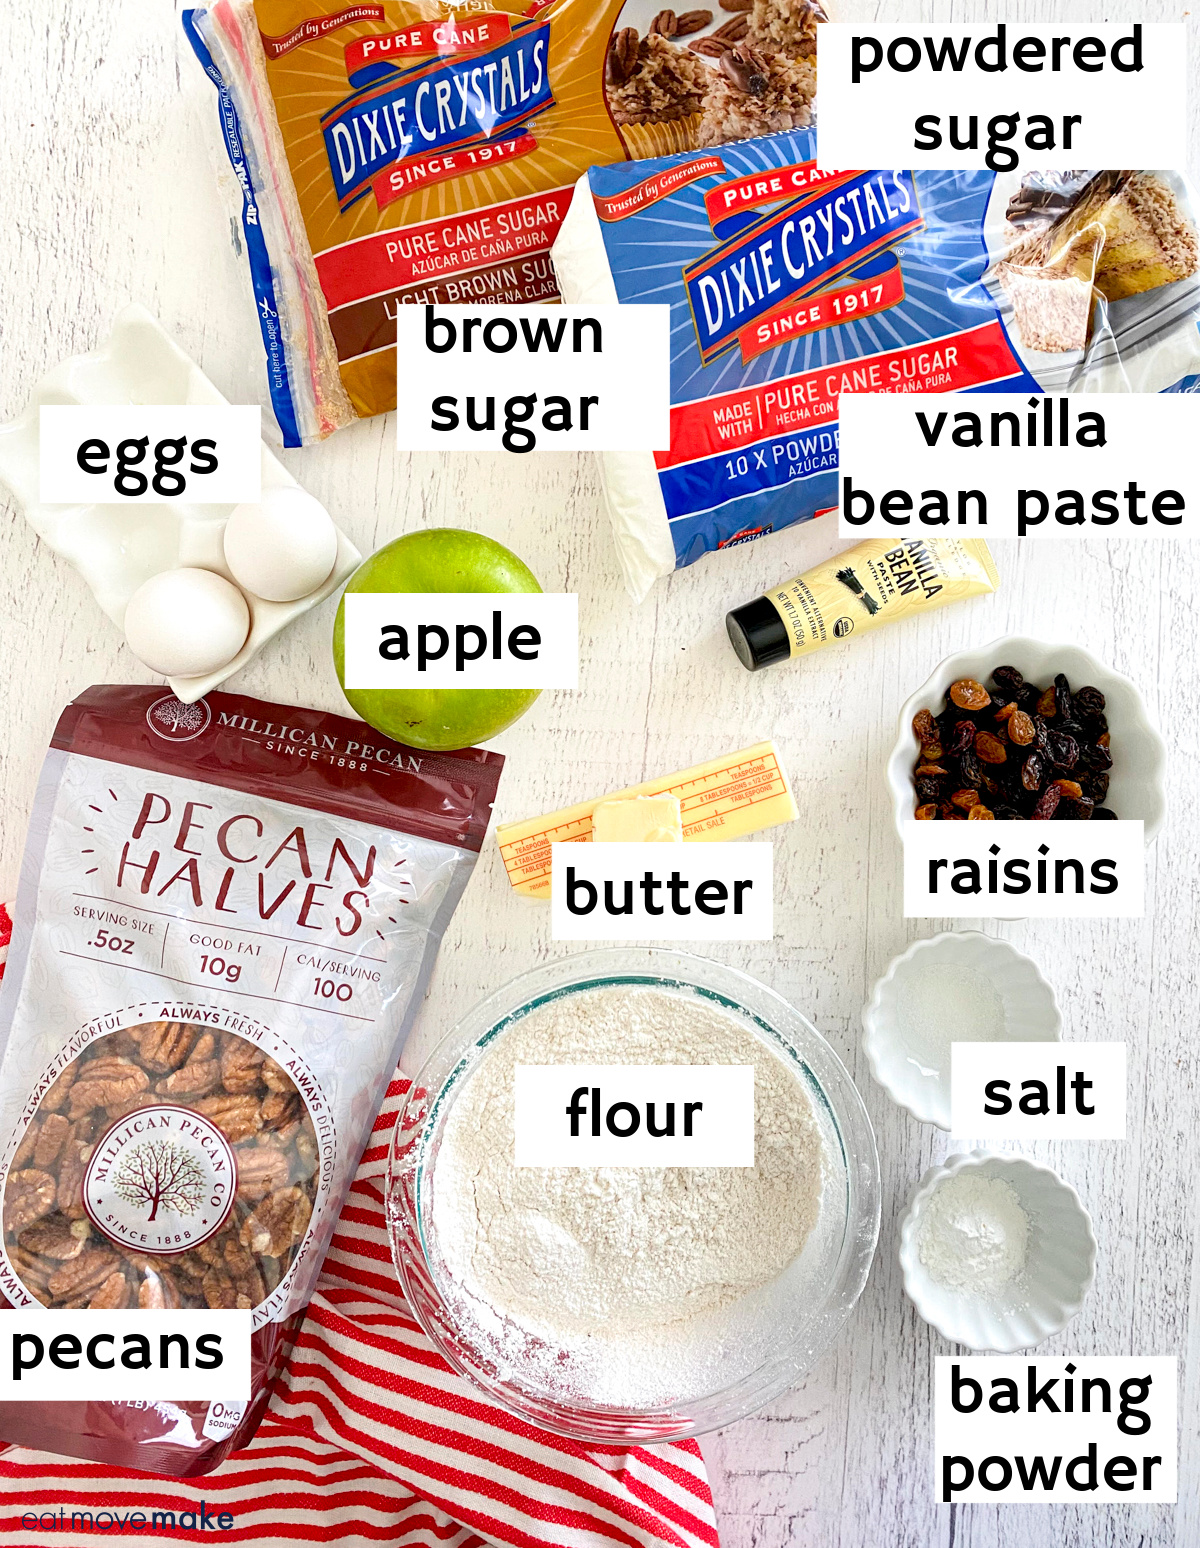 labeled ingredients for apple brownies with brand products